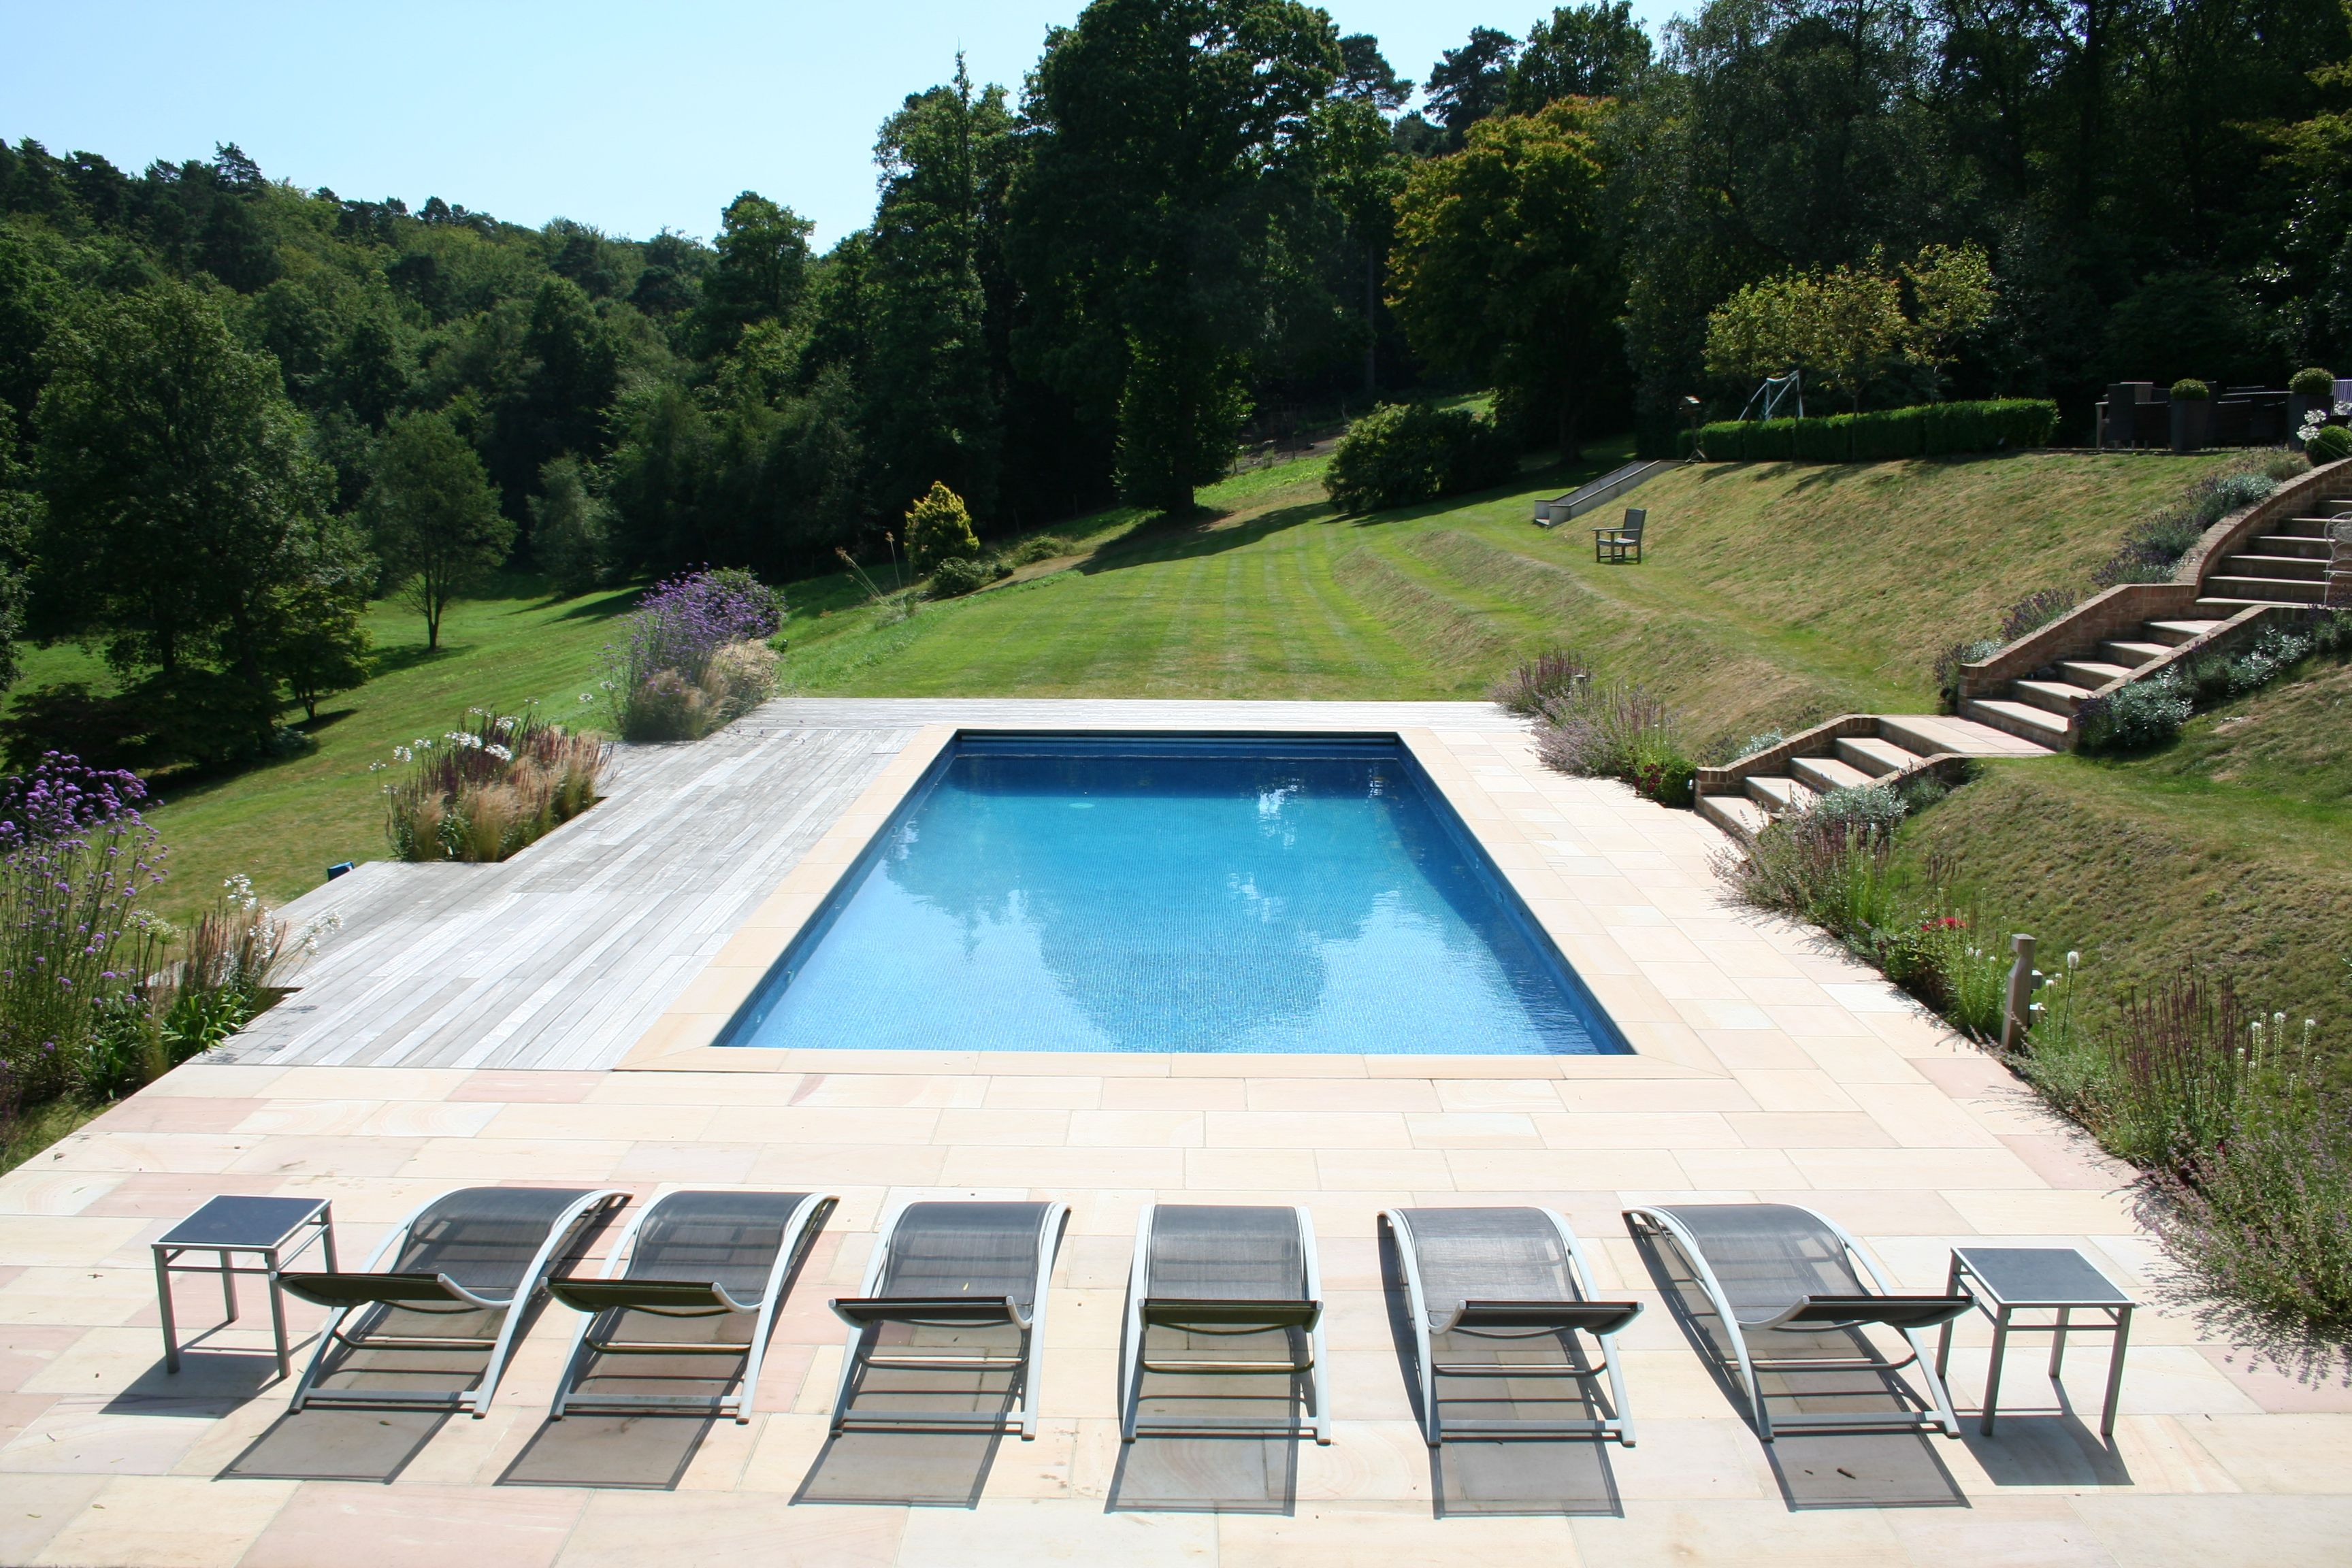 English Country Garden Hillside Pool Hillside Pool Pool Contractors Cool Swimming Pools